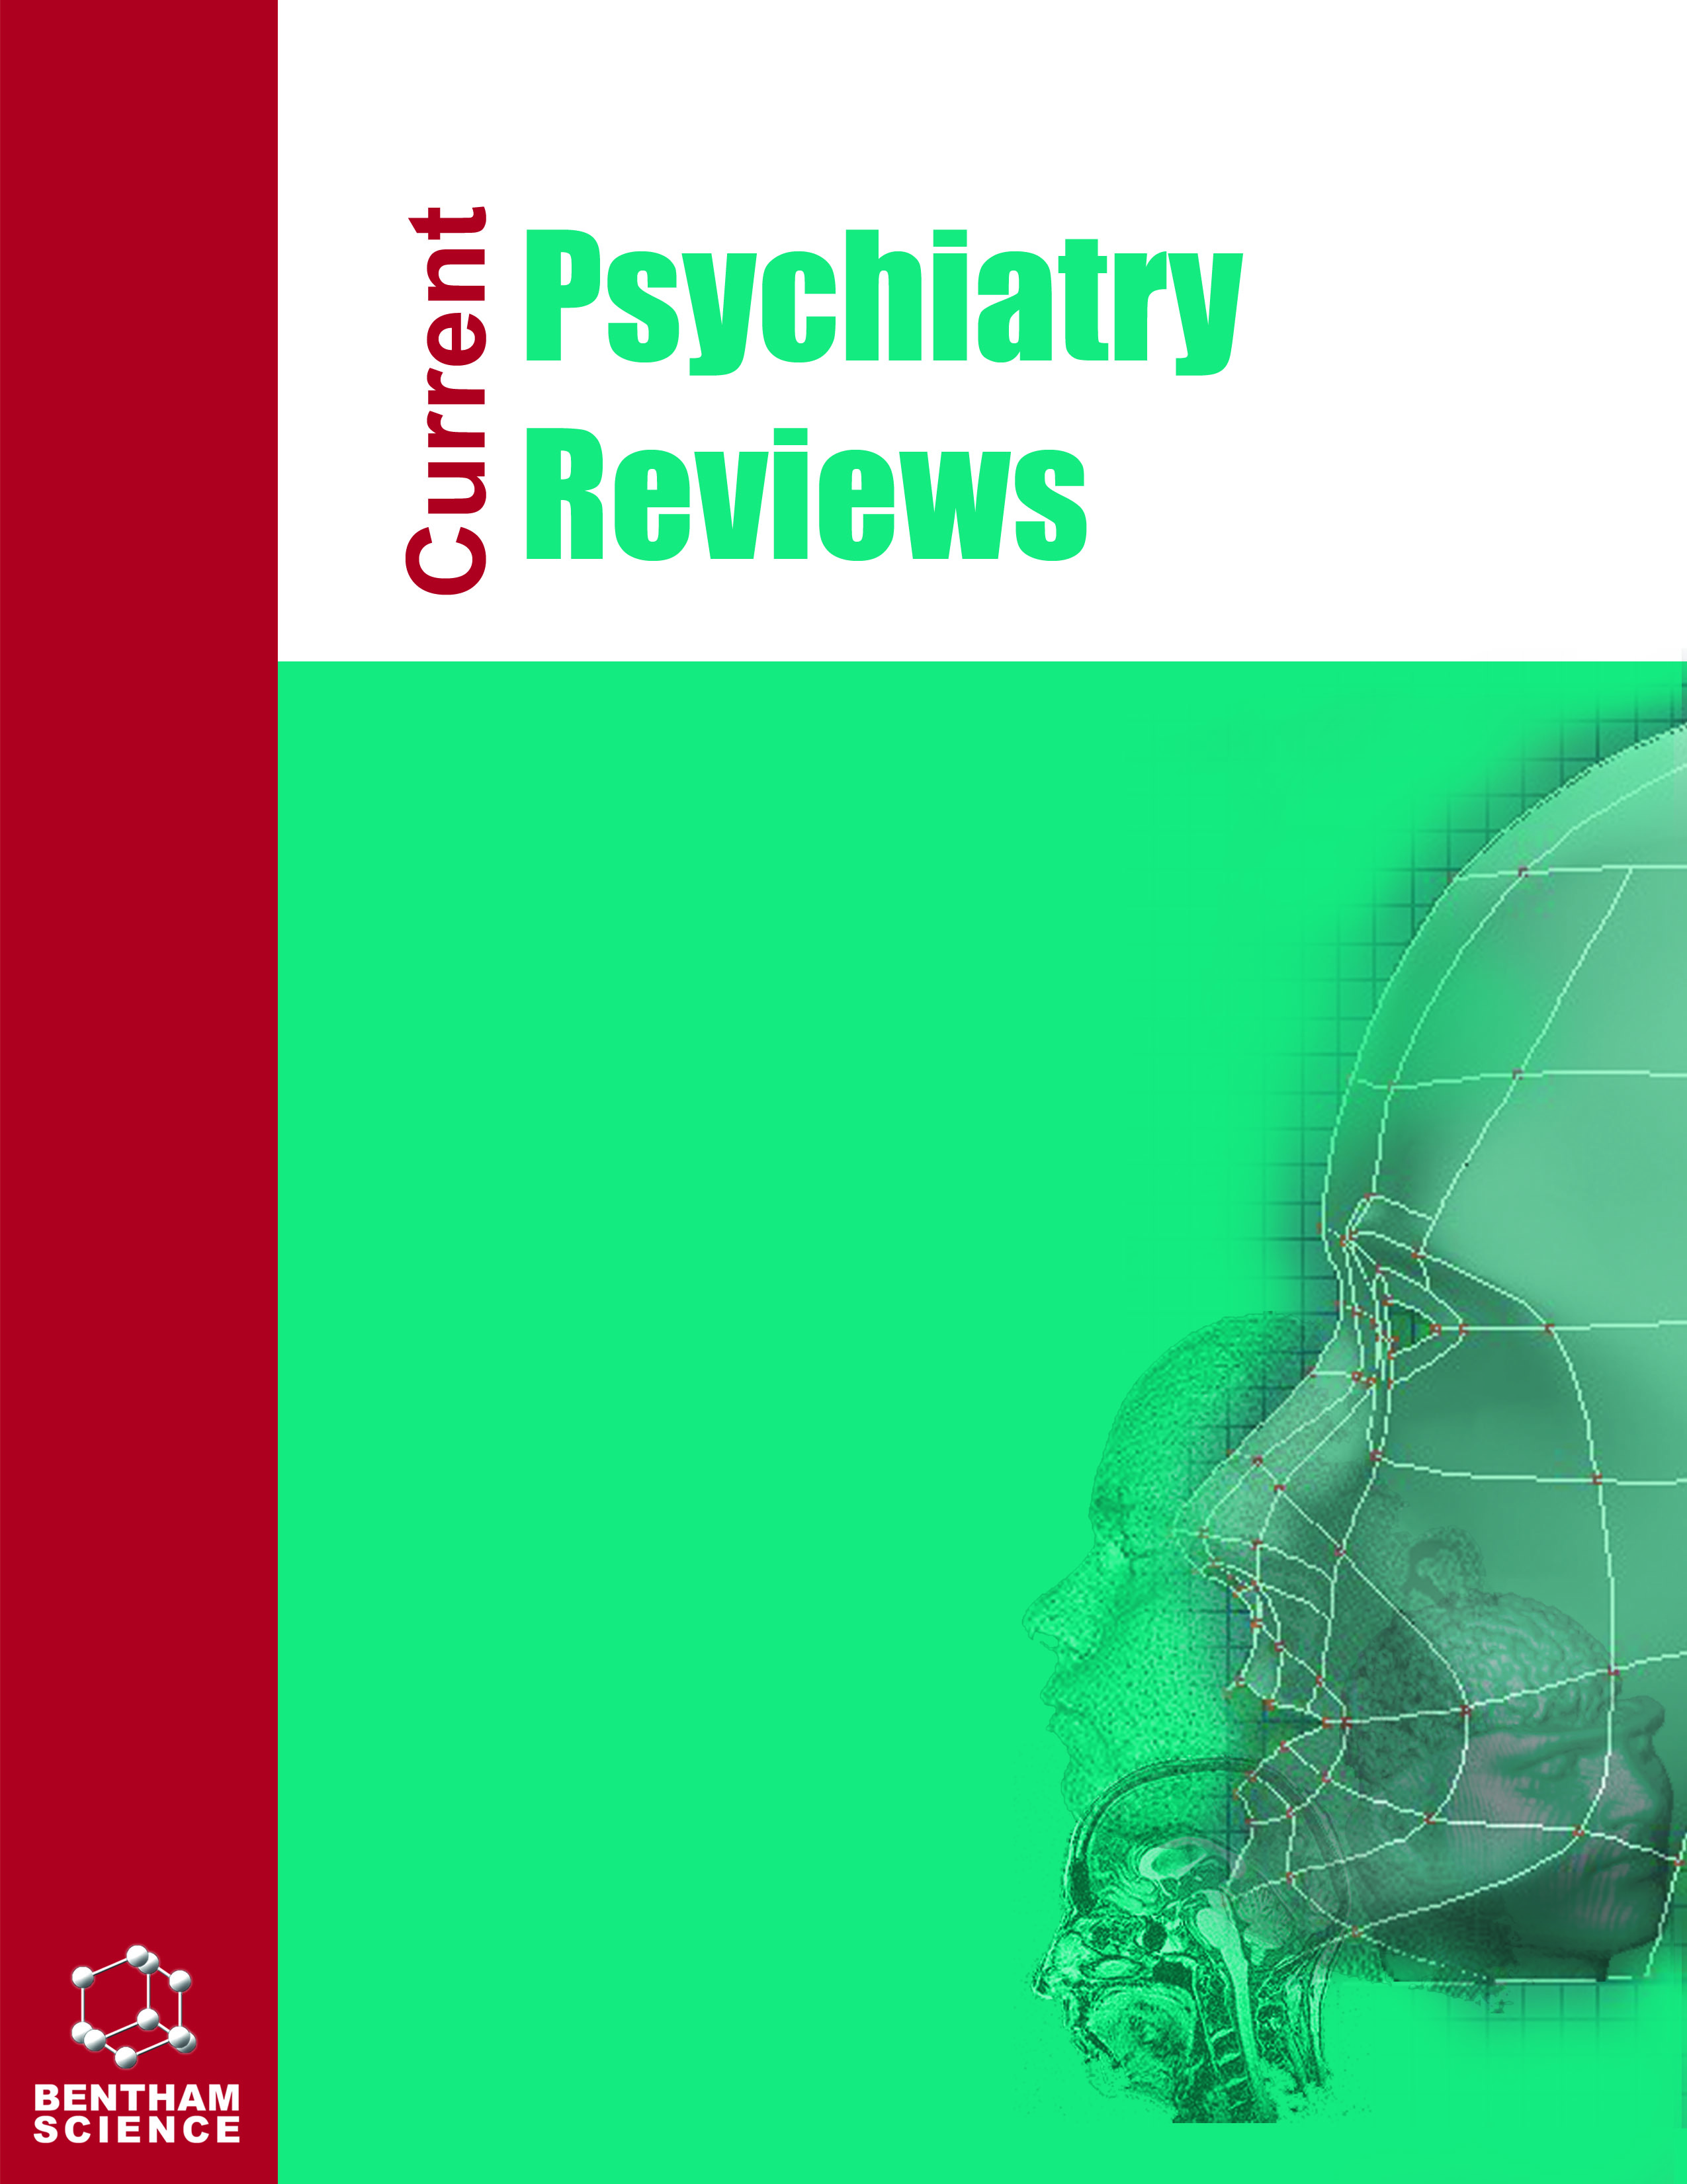 Recently Published Issue of the Journal Current Psychiatry